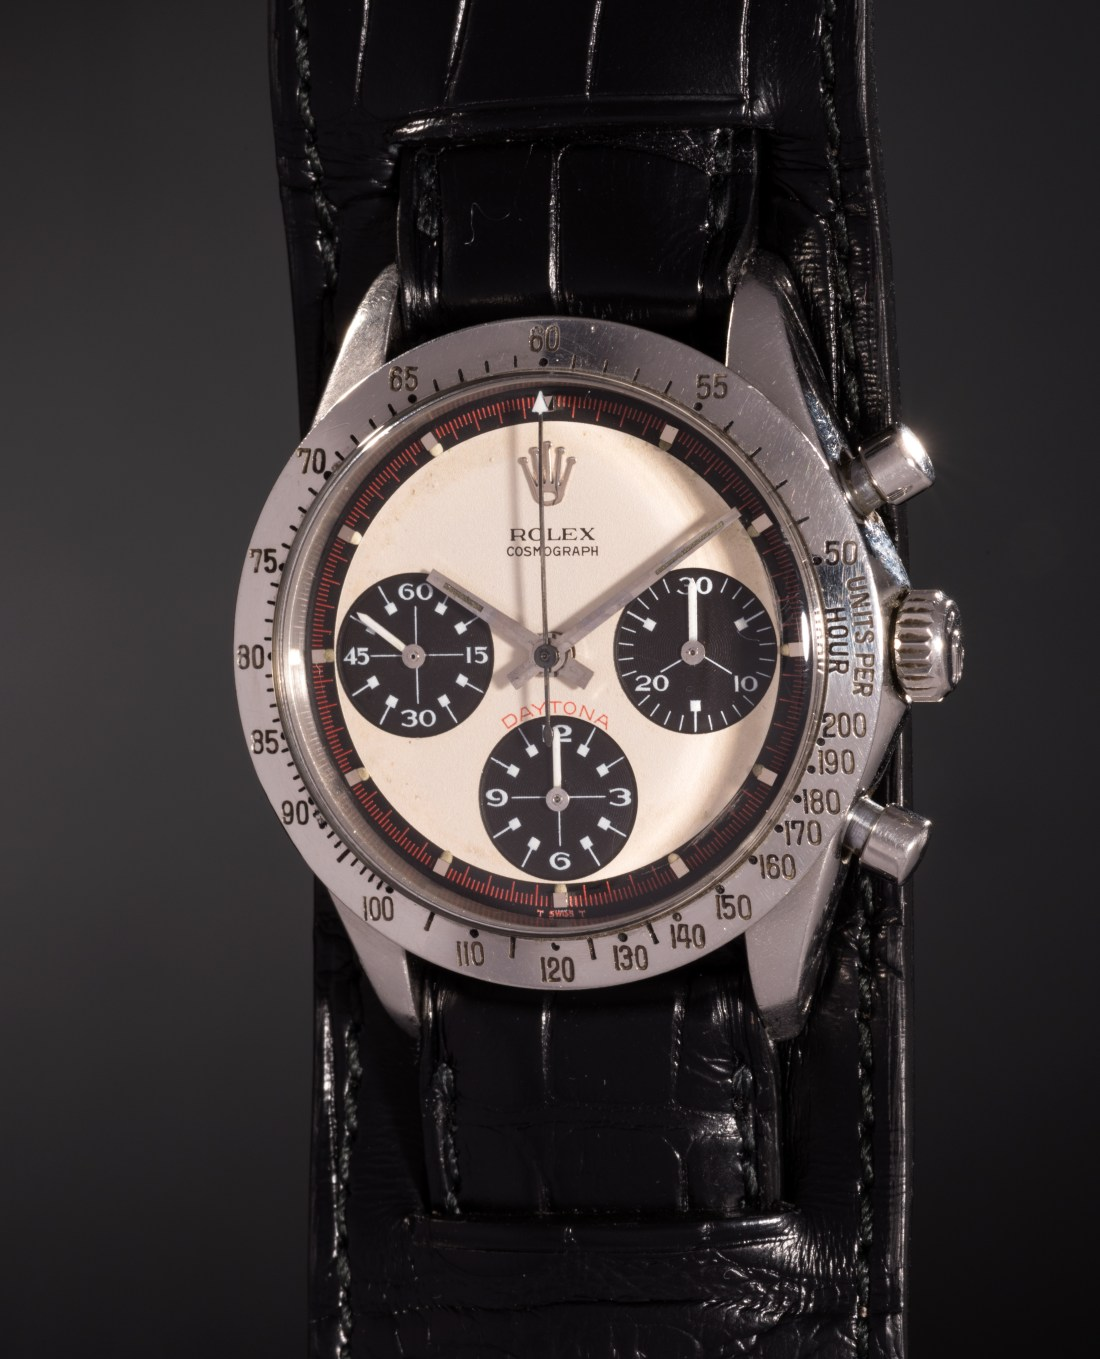 """A 1968 Rolex Daytona """"Paul Newman,"""" reference 6239 and owned by the late actor Paul Newman. Purchased for him by his wife, Joanne Woodward, she engraved the back of the case with the words, """"DRIVE CAREFULLY ME."""" Estimated in excess of $1 million, Phillips sold it in New York in October 2017 for $17.7 million, a world auction record for any wristwatch."""